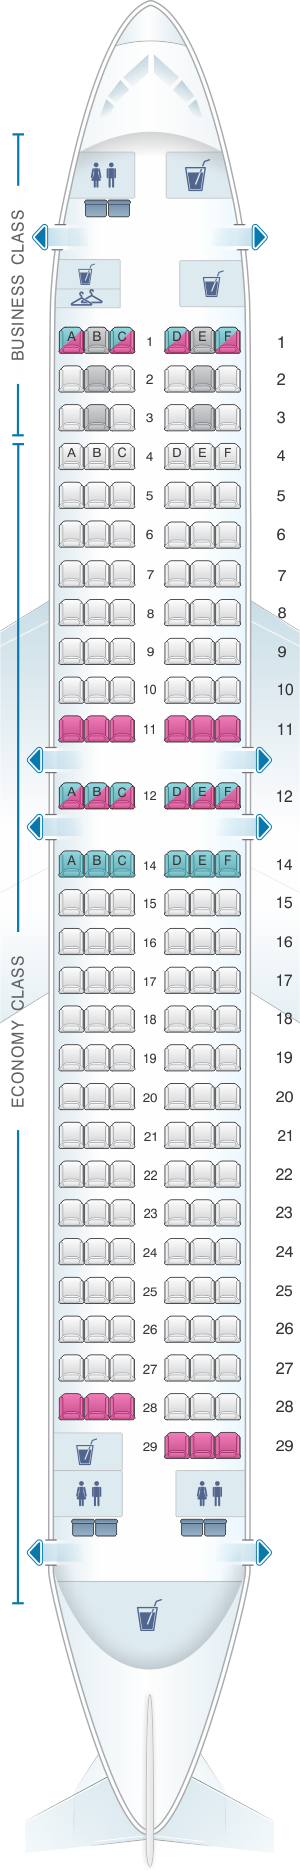 Seat map for AnadoluJet Boeing B737 800